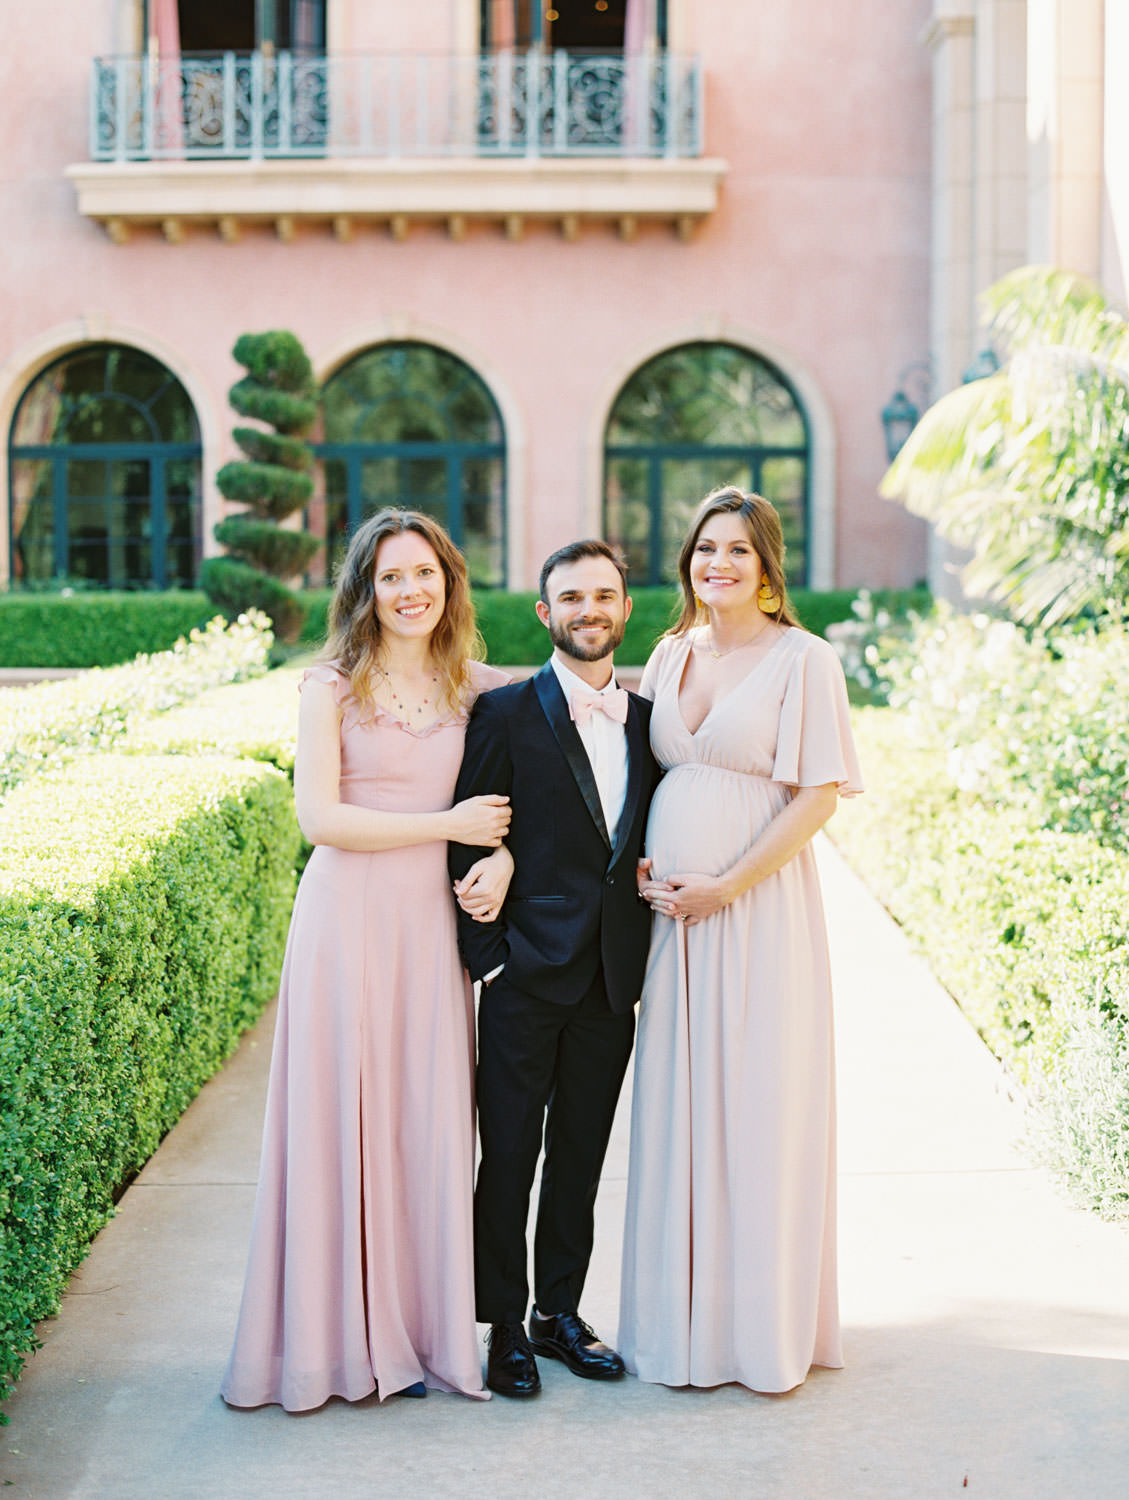 Bridesmaids in mix match pink dresses with bridesman in black tux and pink bowtie. Fairmont Grand del Mar wedding published on Martha Stewart Weddings